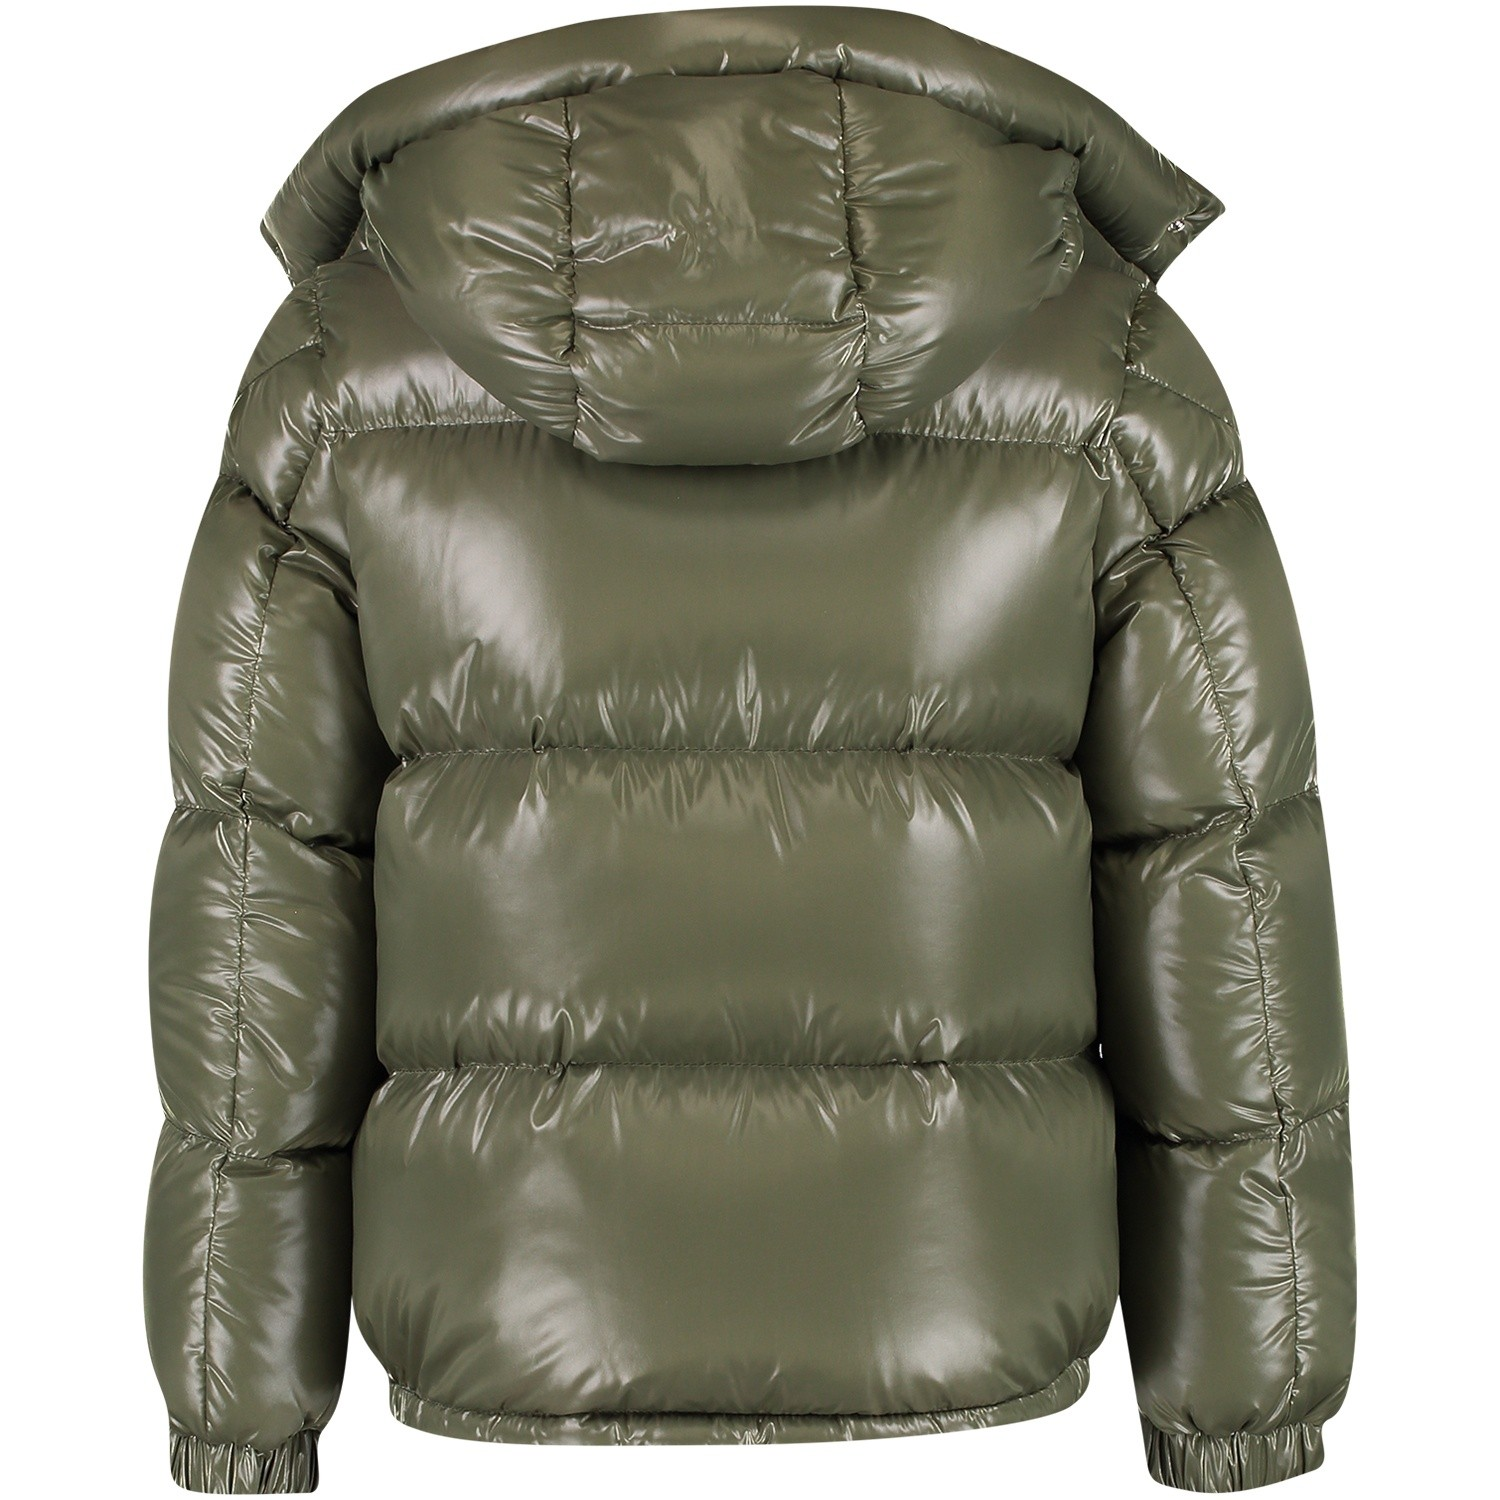 Picture of Moncler 4187405 kids jacket army